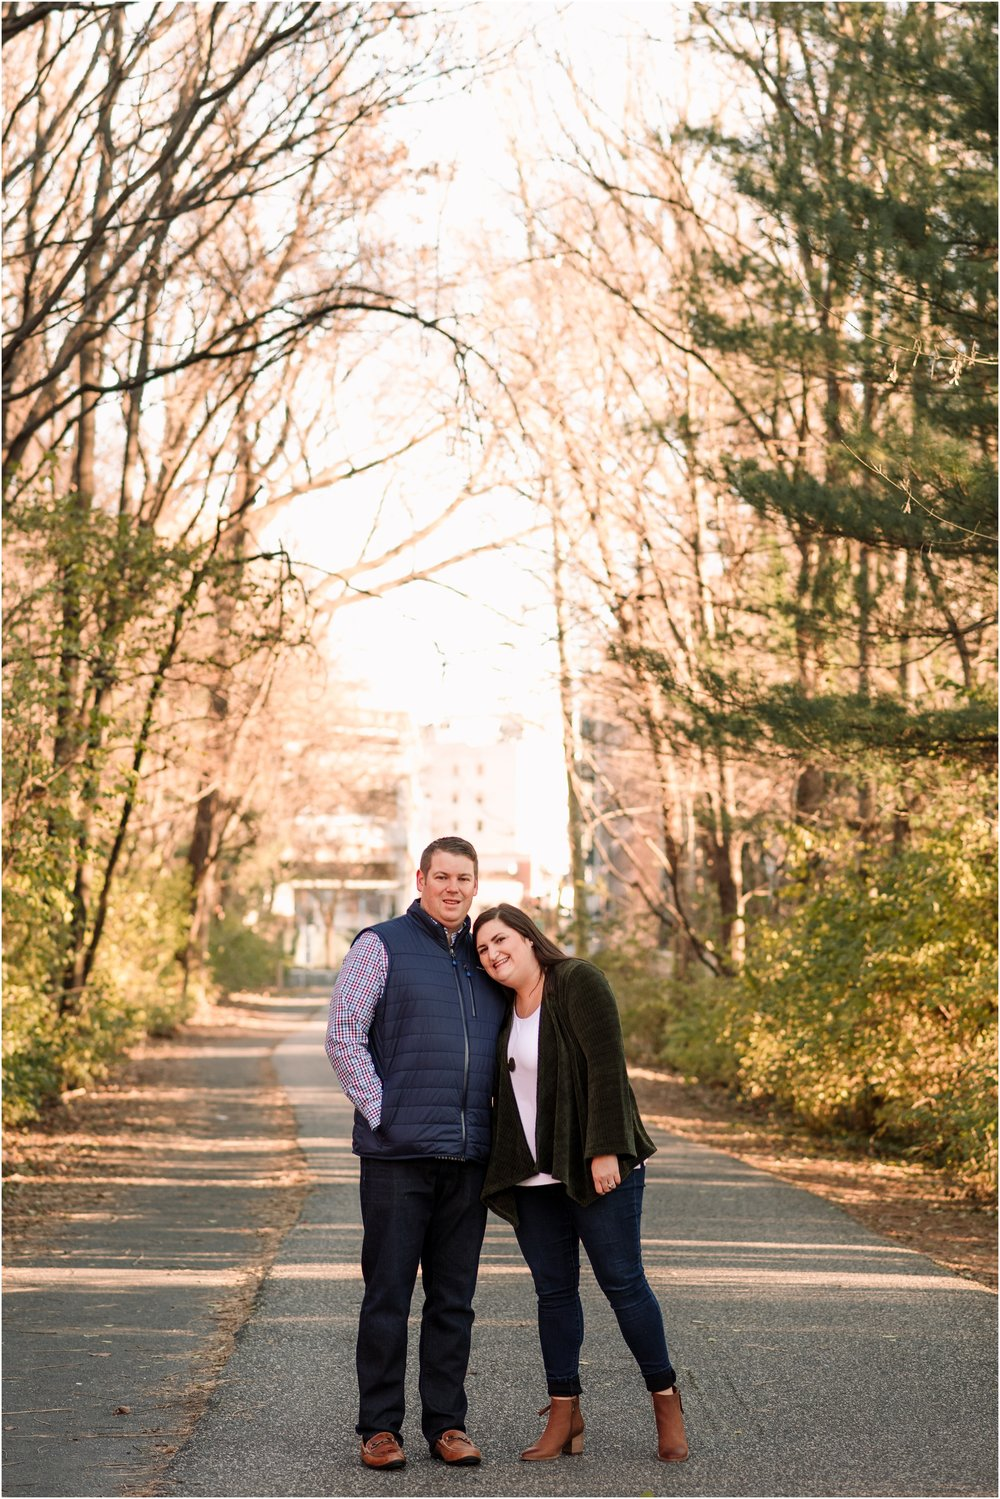 hannah leigh photography Engagement Session Bethesda MD_2549.jpg